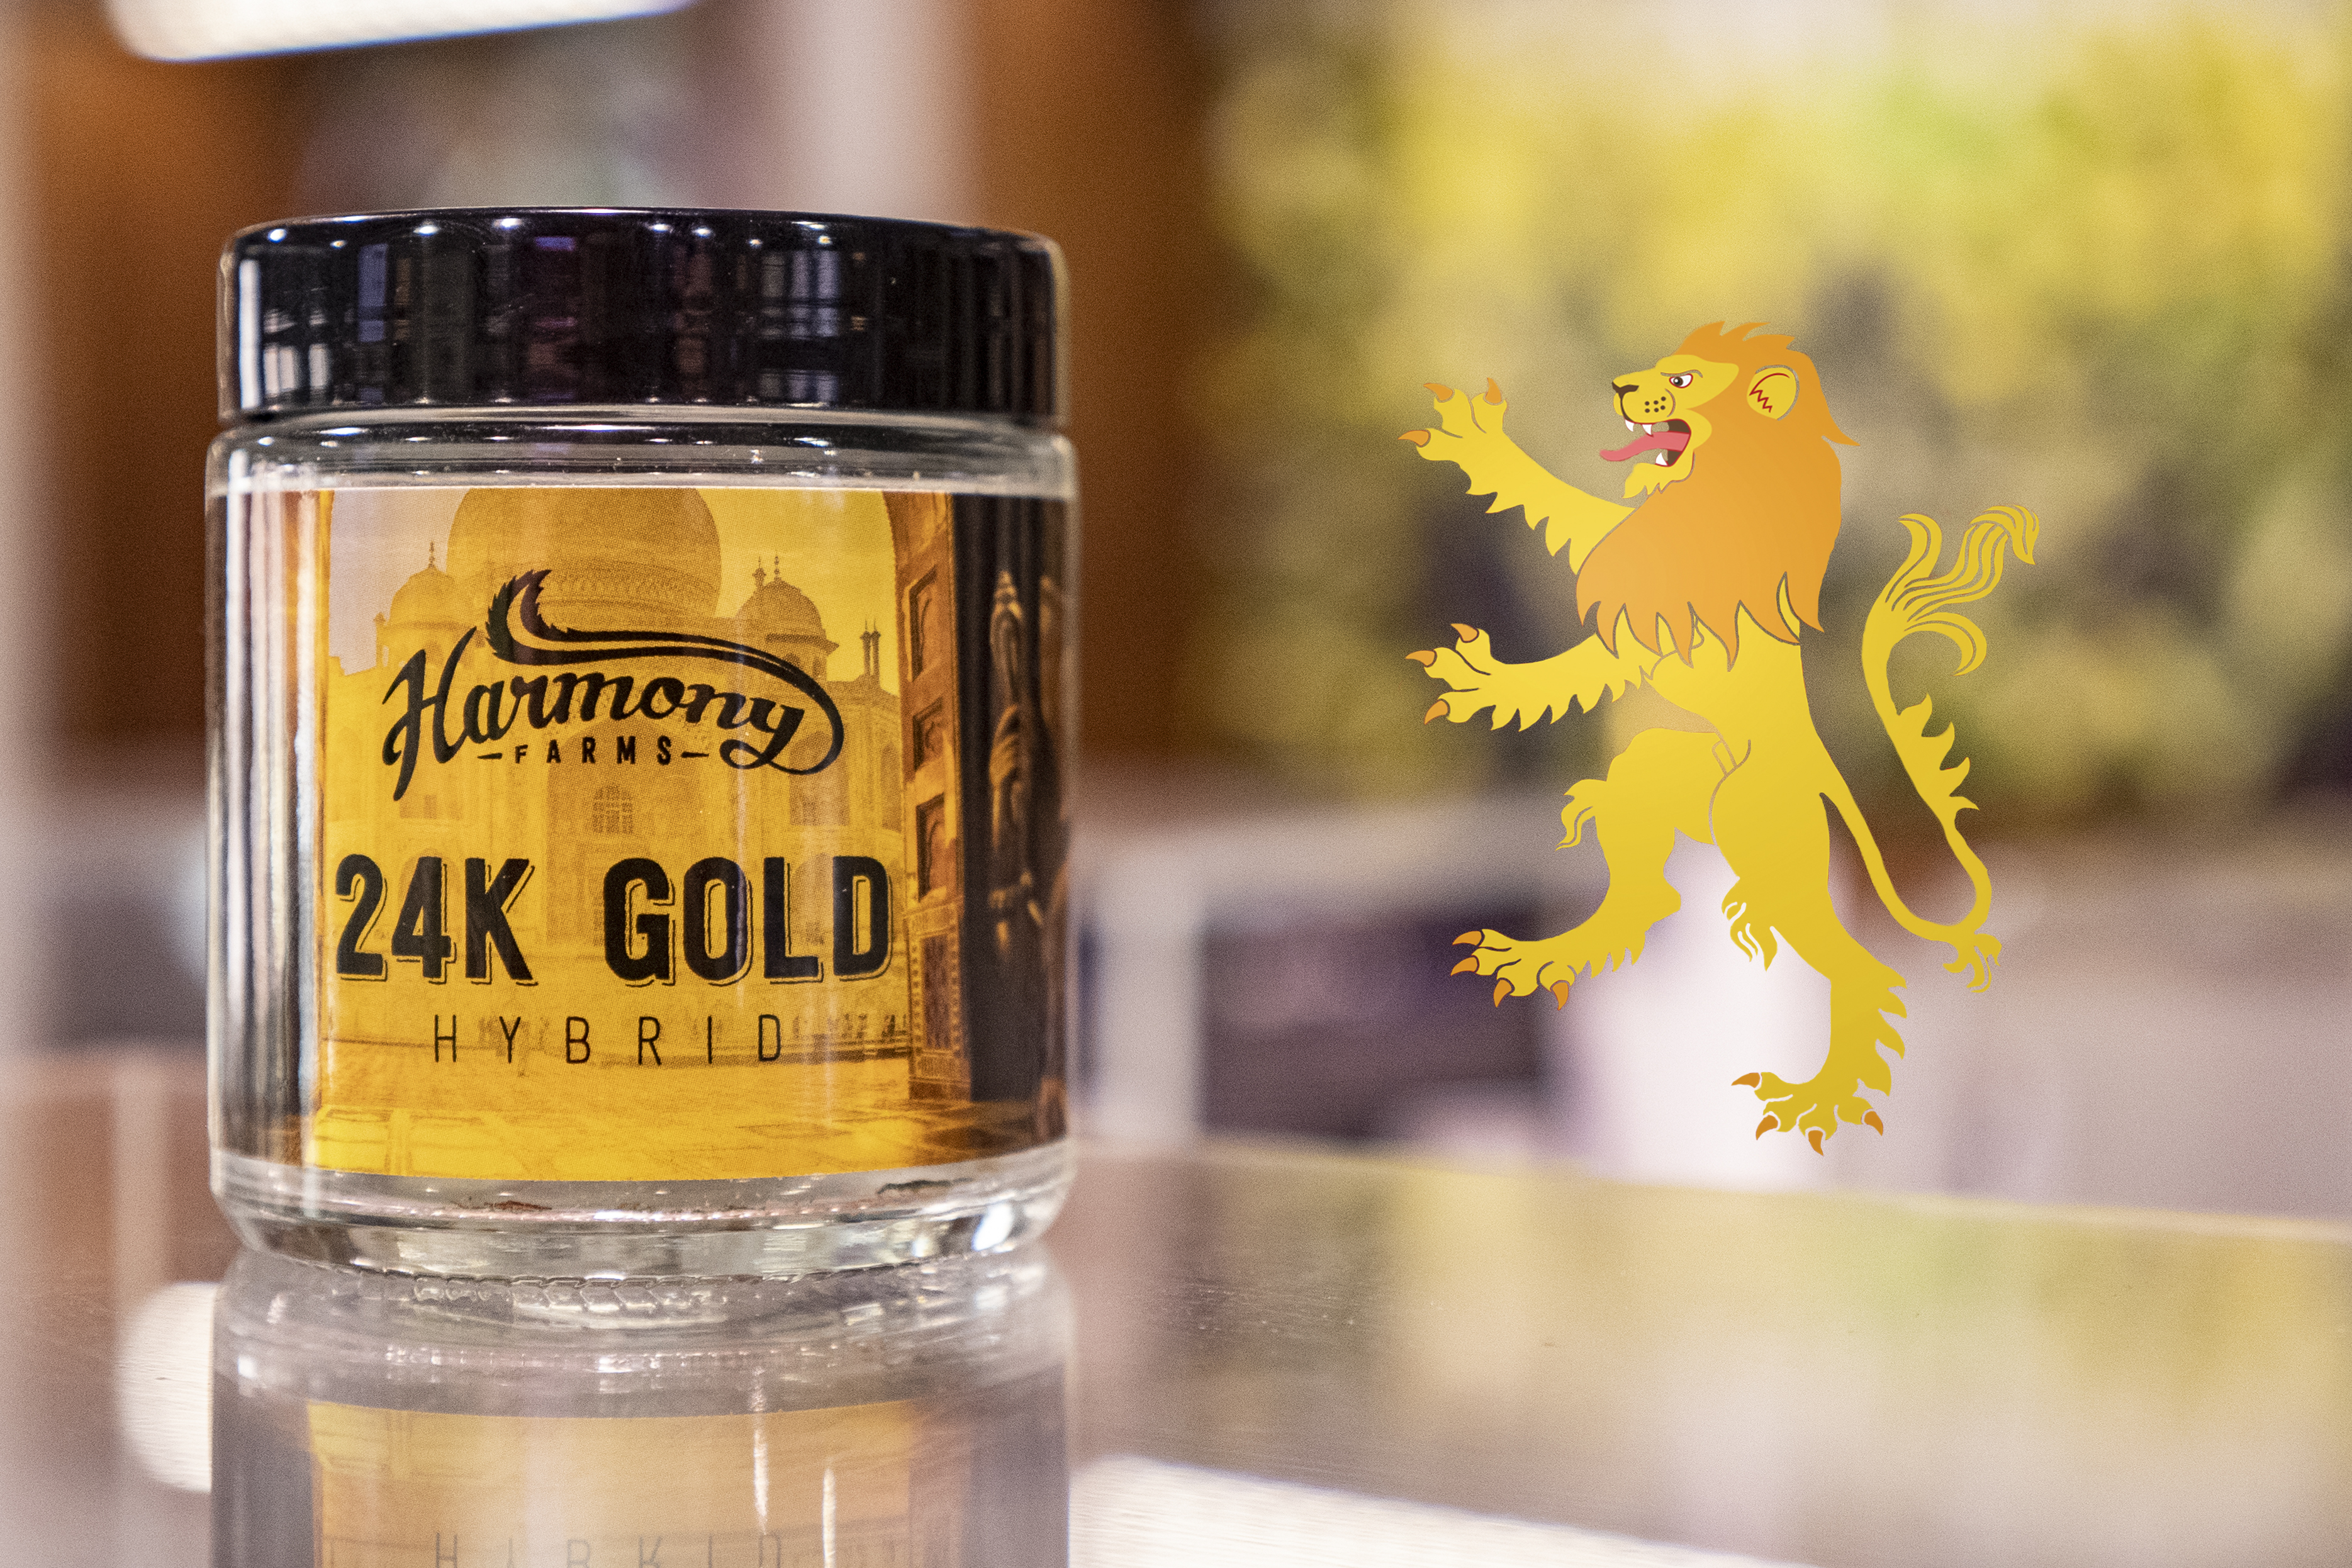 Game of Thrones Cannabis Strains and Sigils: 24K and House Lannister